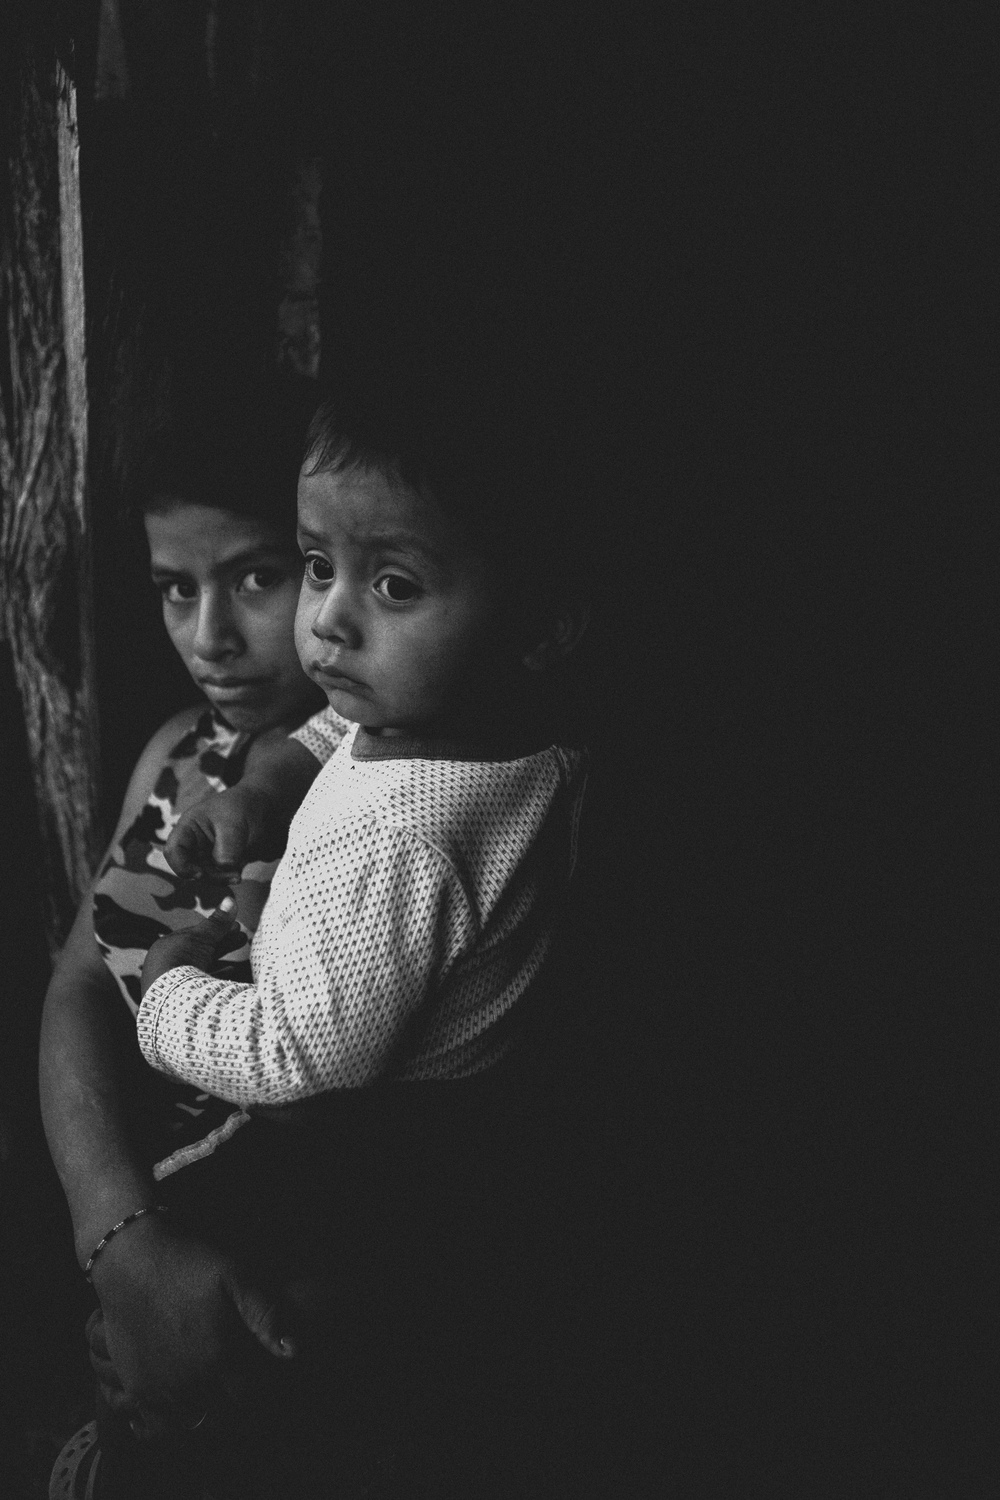 El_Milagro_Portraits_Documentary_Photography_Global_Eyes_Media_009.jpg